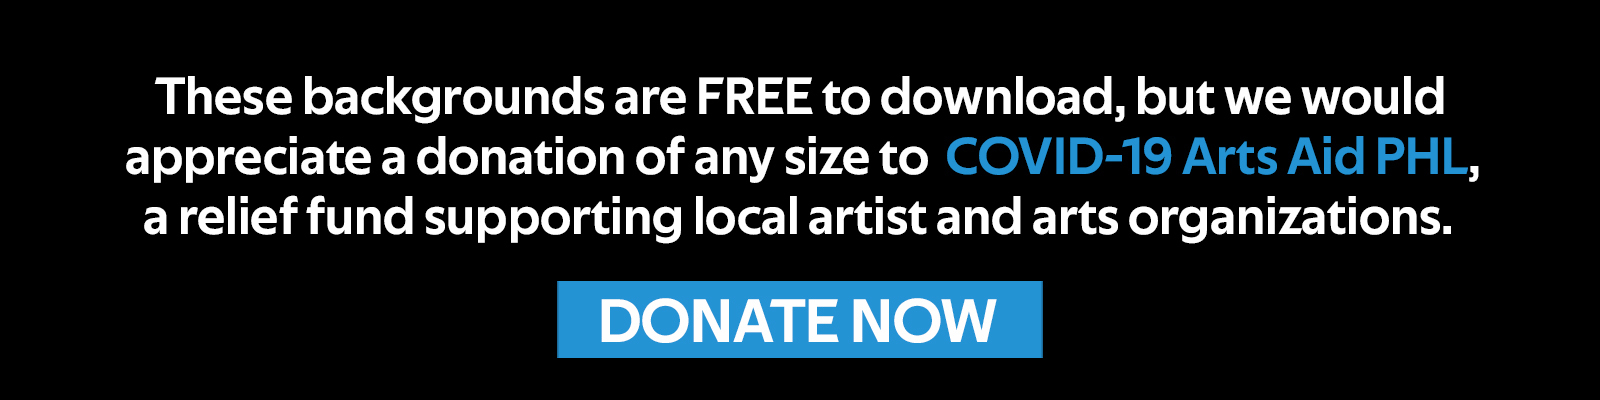 Donate to the COVID Arts Aid PHL Fund